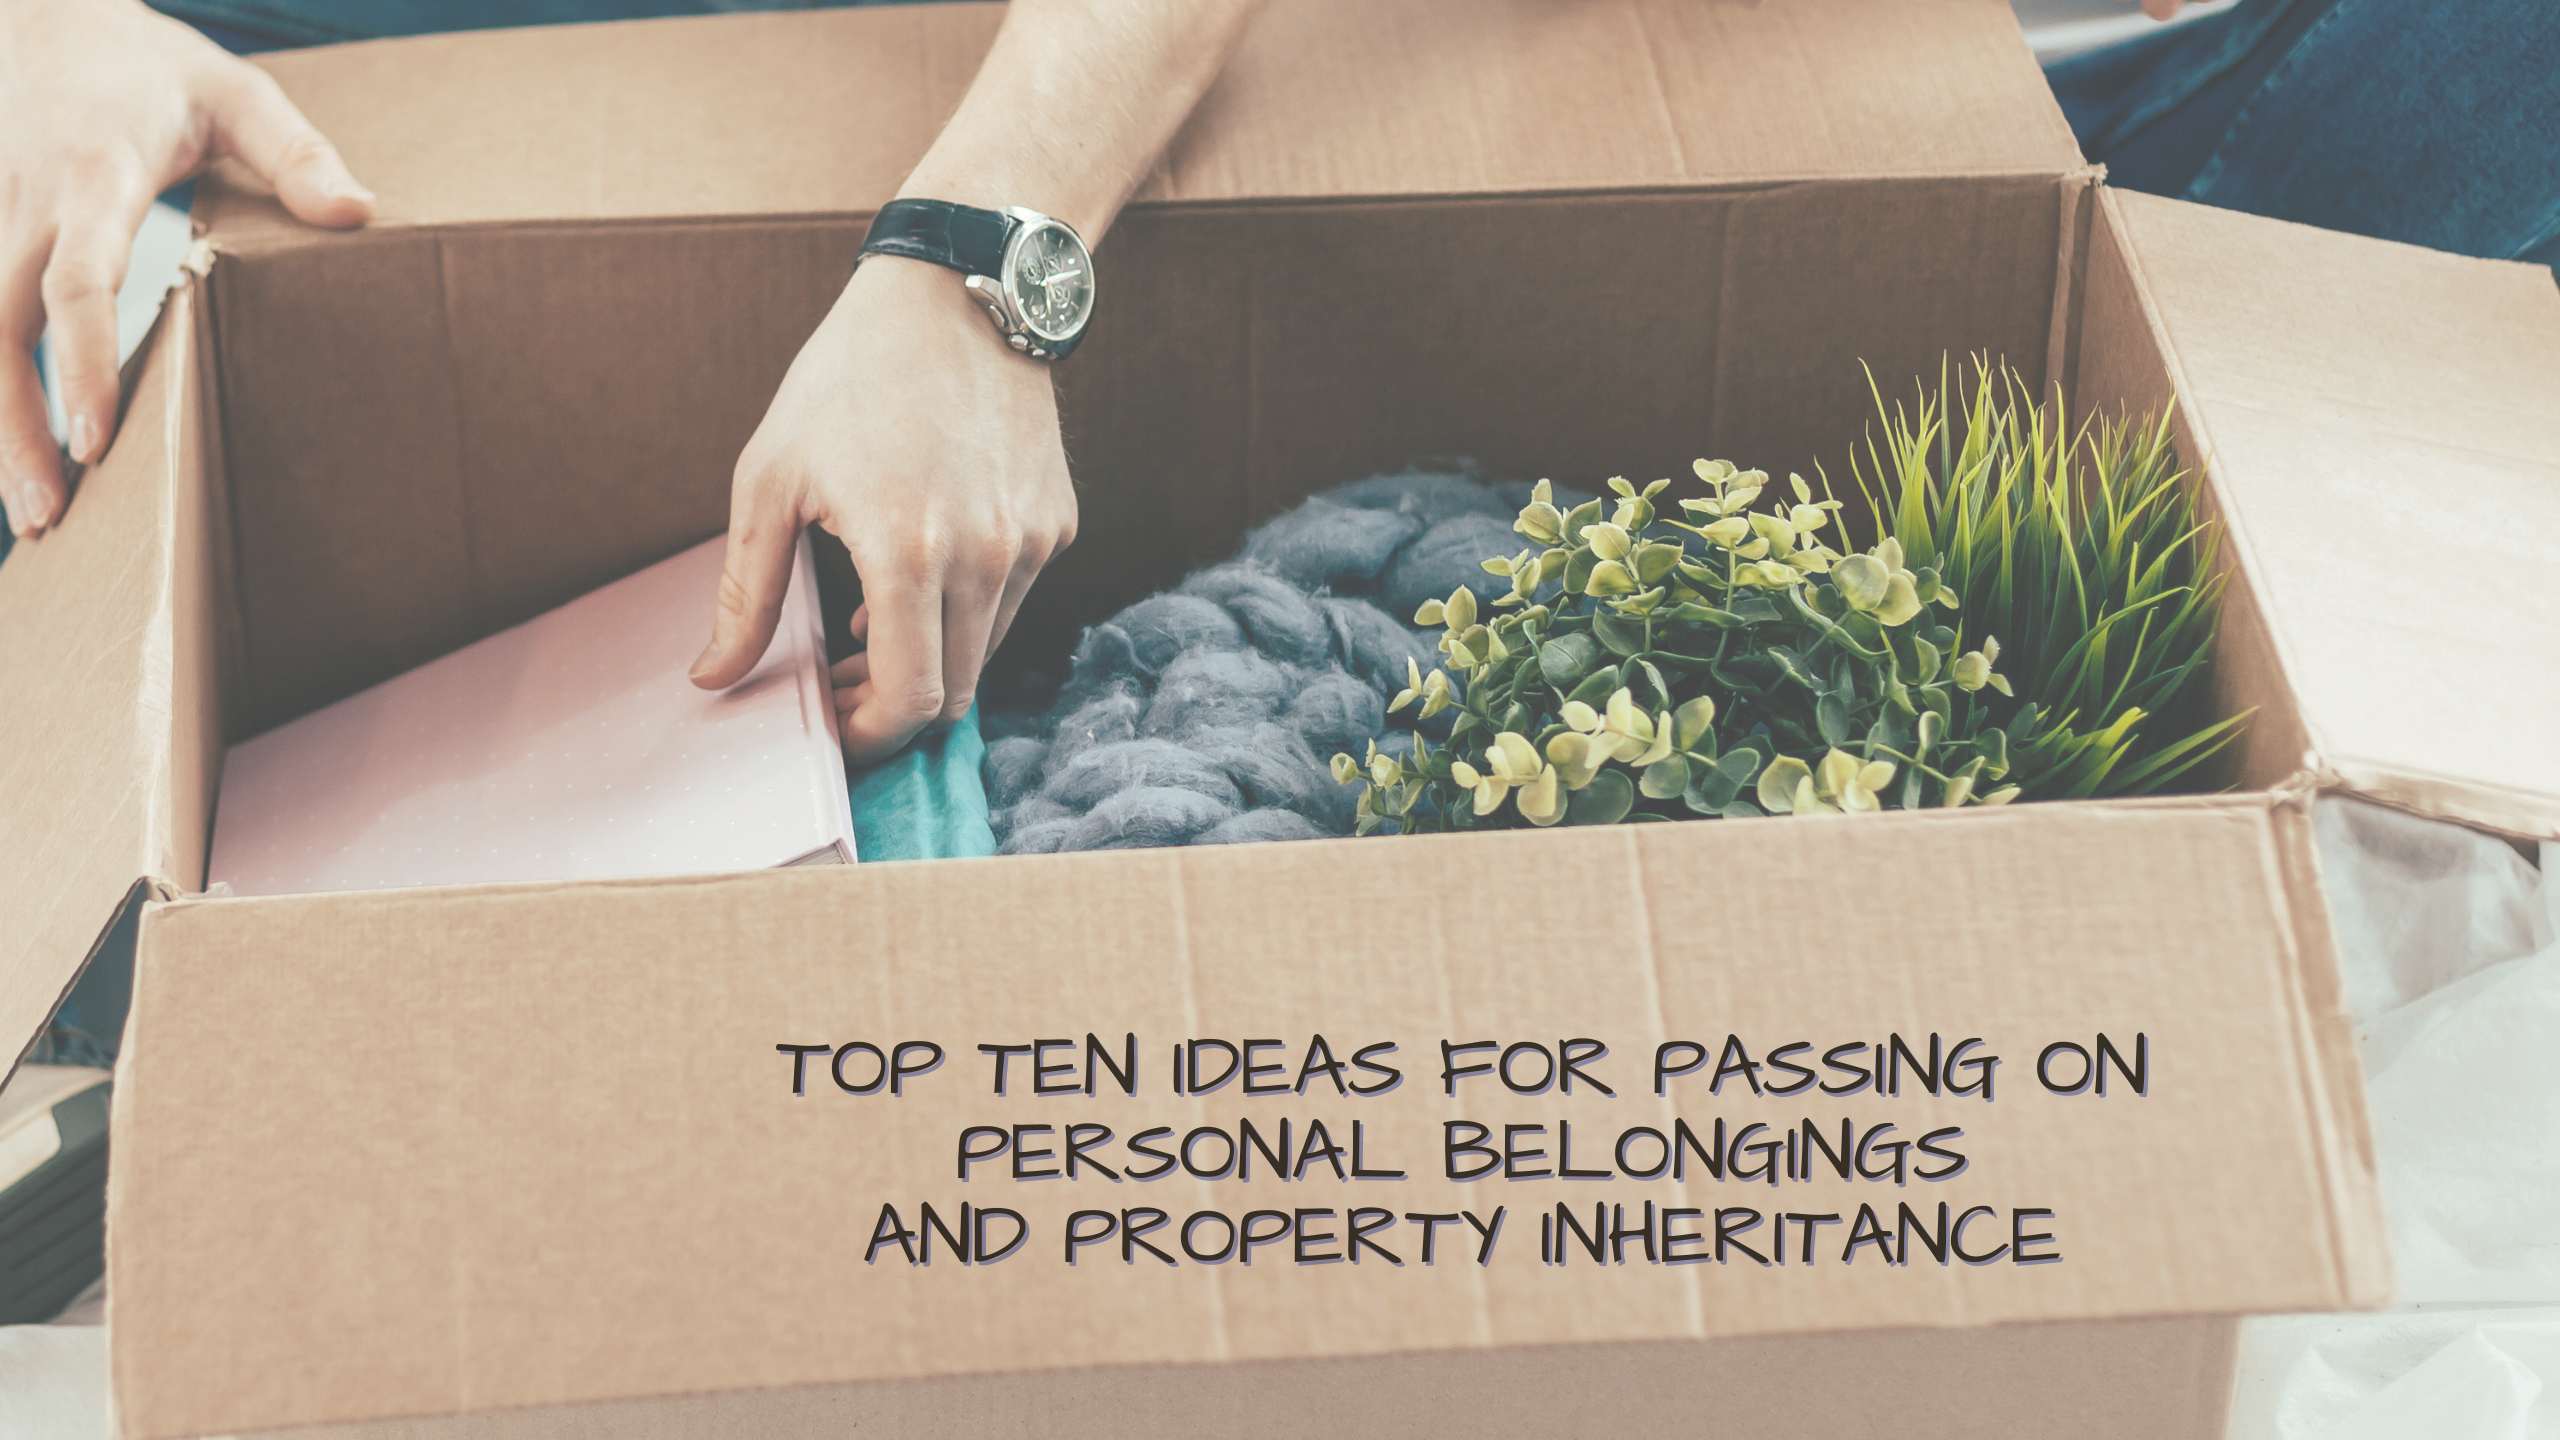 Top Ten Ideas for Passing on Personal Belongings and Property Inheritance